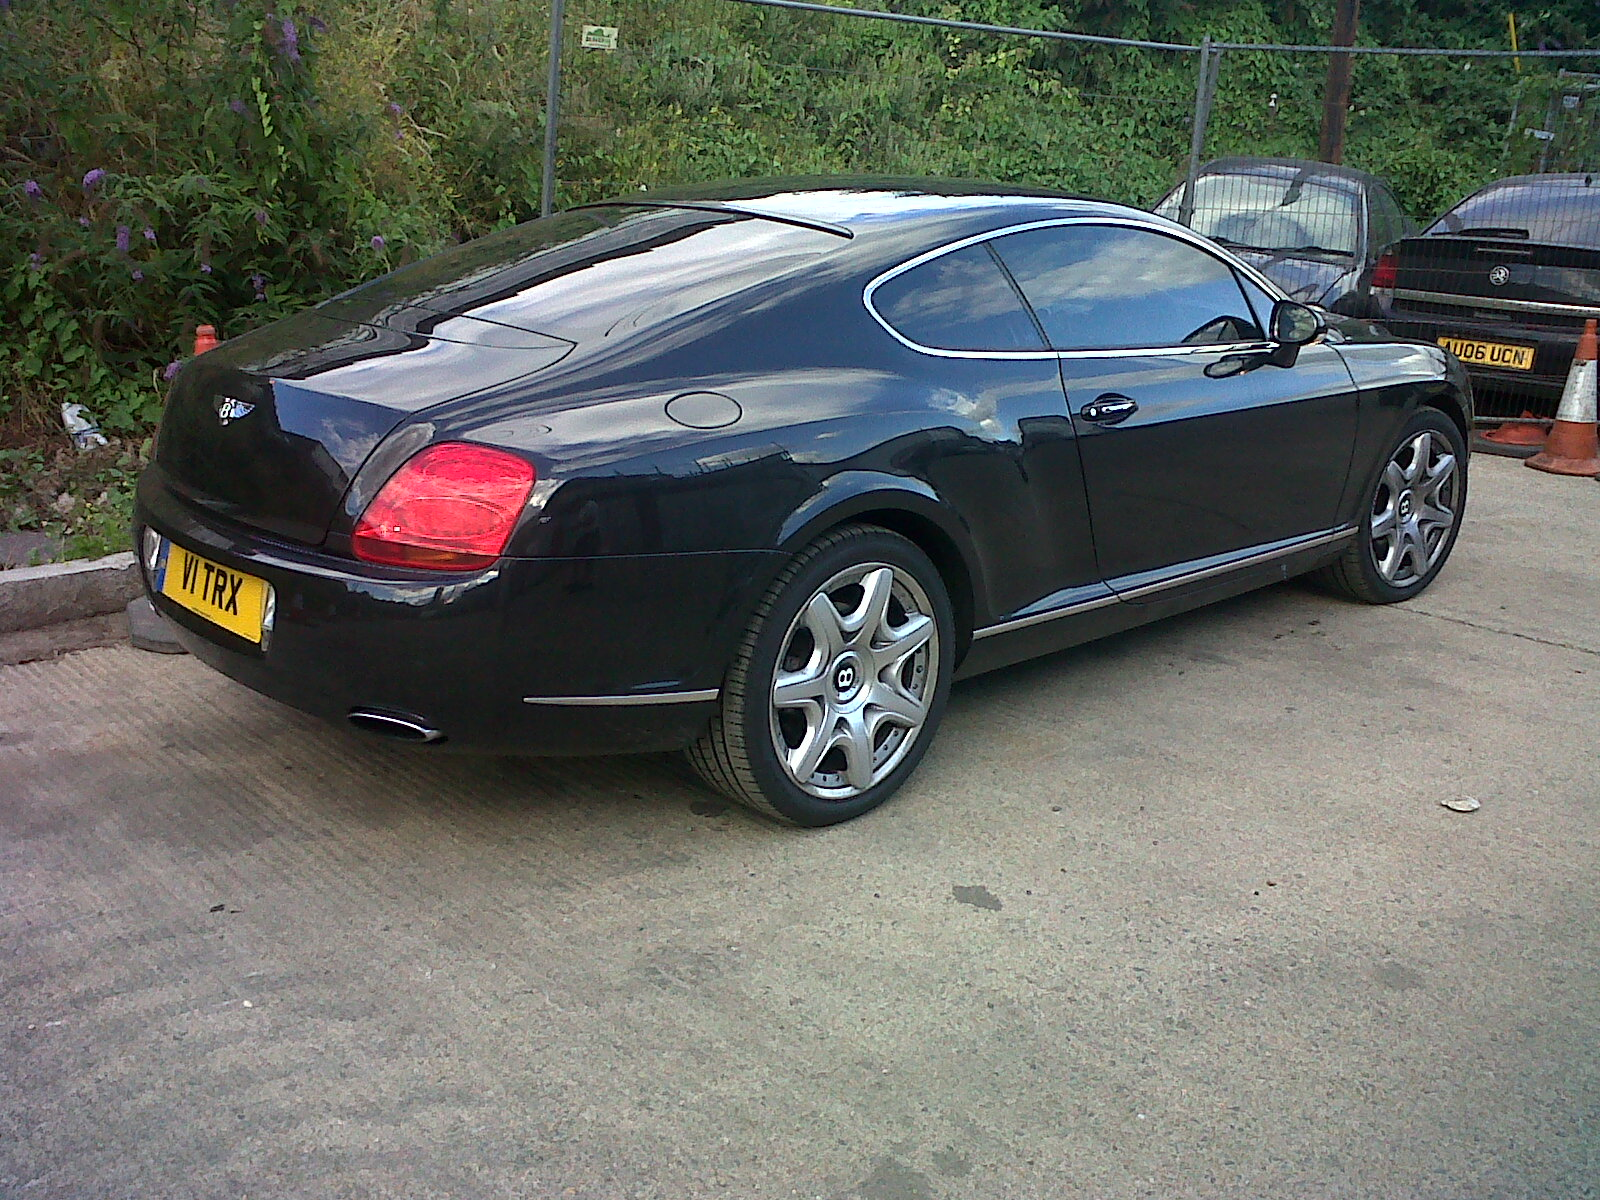 #v1#black #car #bentley #sportscar #windowtintinguk